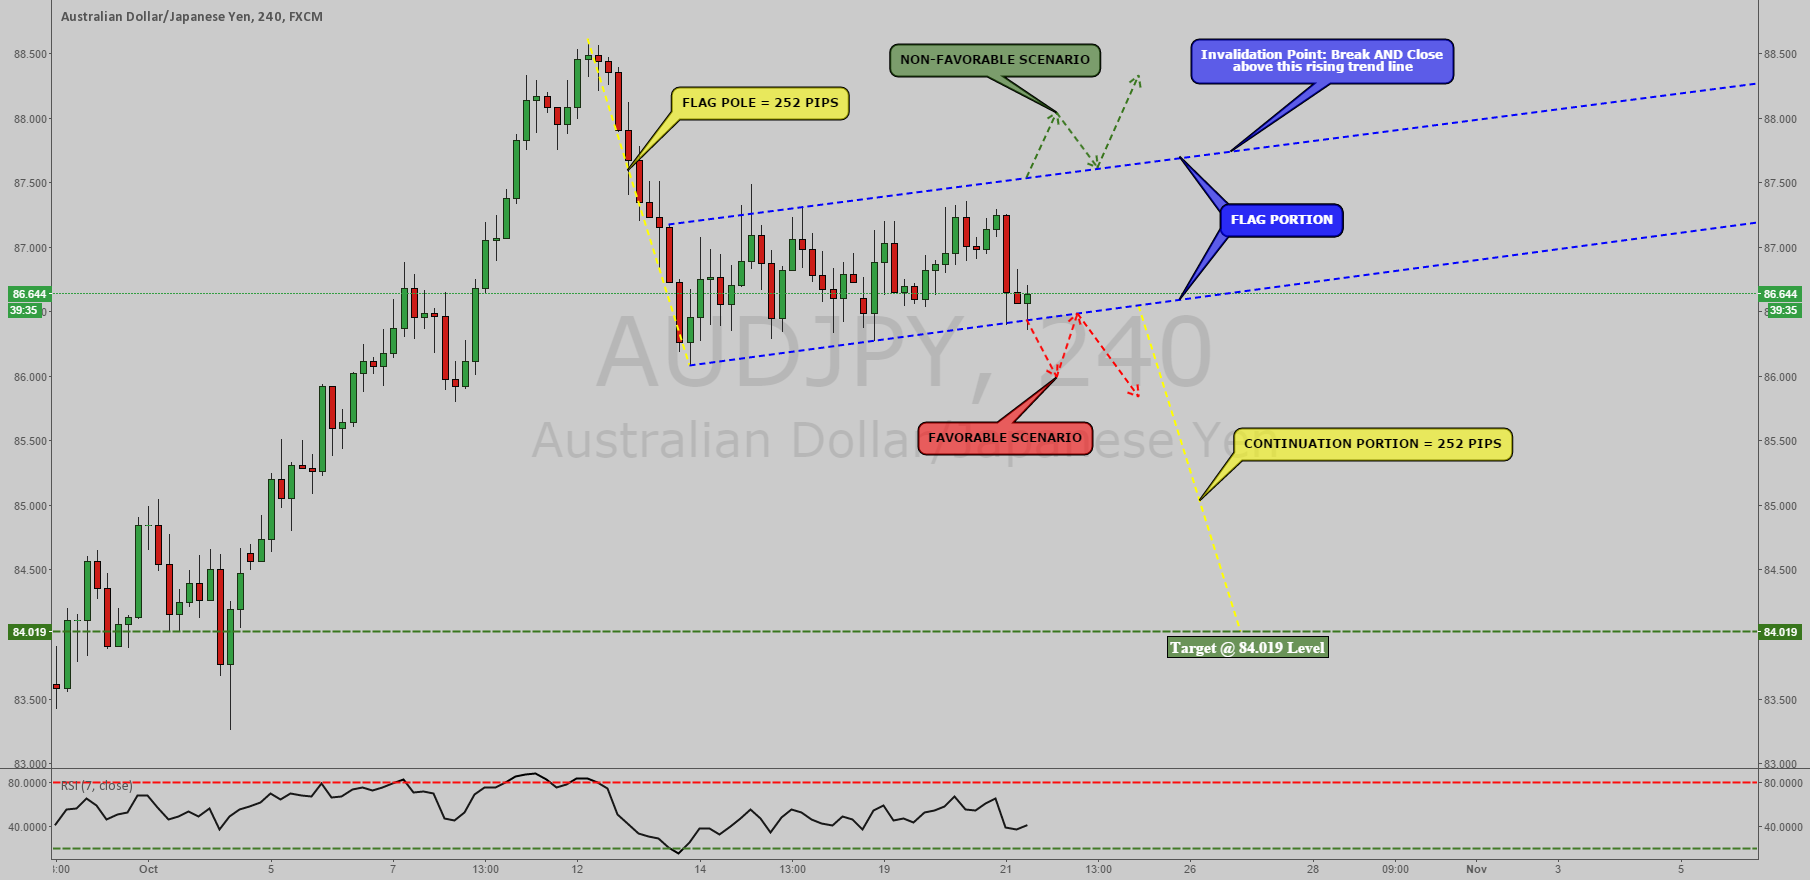 AUDJPY: BEARISH FLAG PATTERN FORMED, CLOSE TO BREAKOUT [4HR] !!!